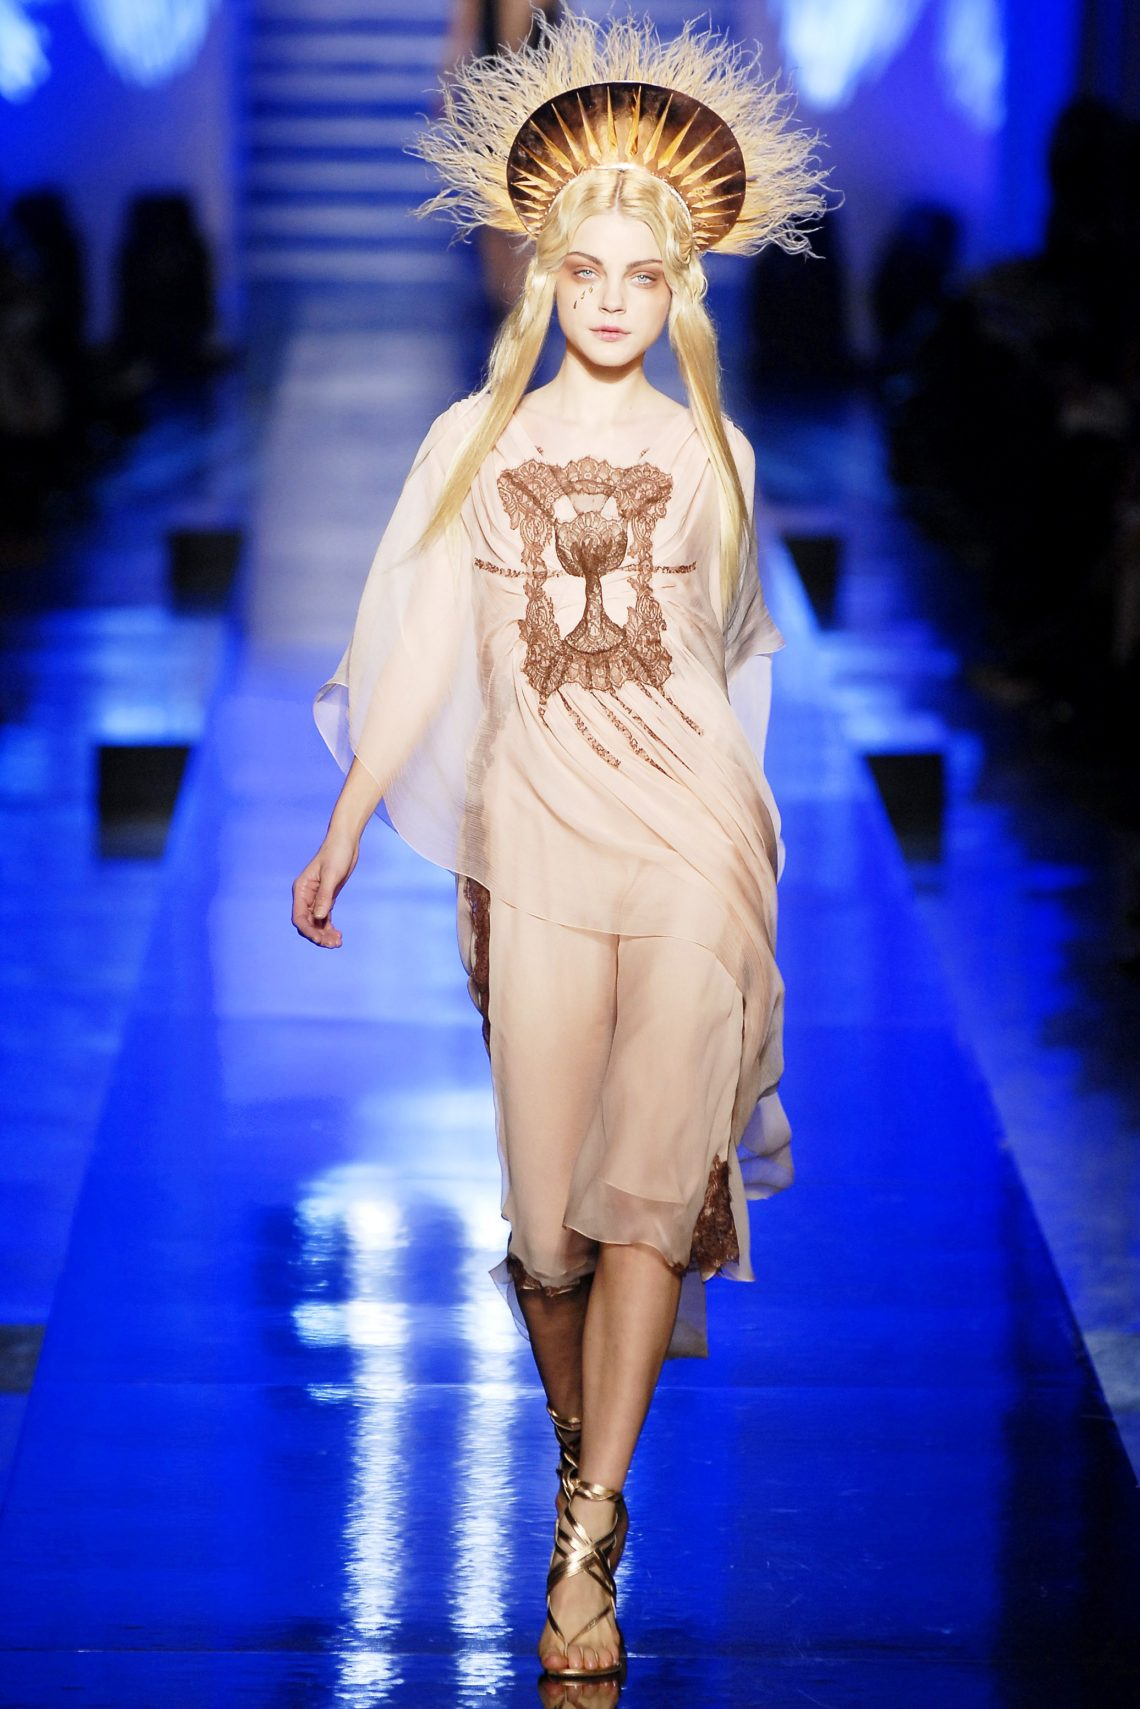 Unveiling-Intriguing-Conversation_Fashion-Religion-at-Met-Costume-Institute_Jean-Paul-Gaultier_angel-models